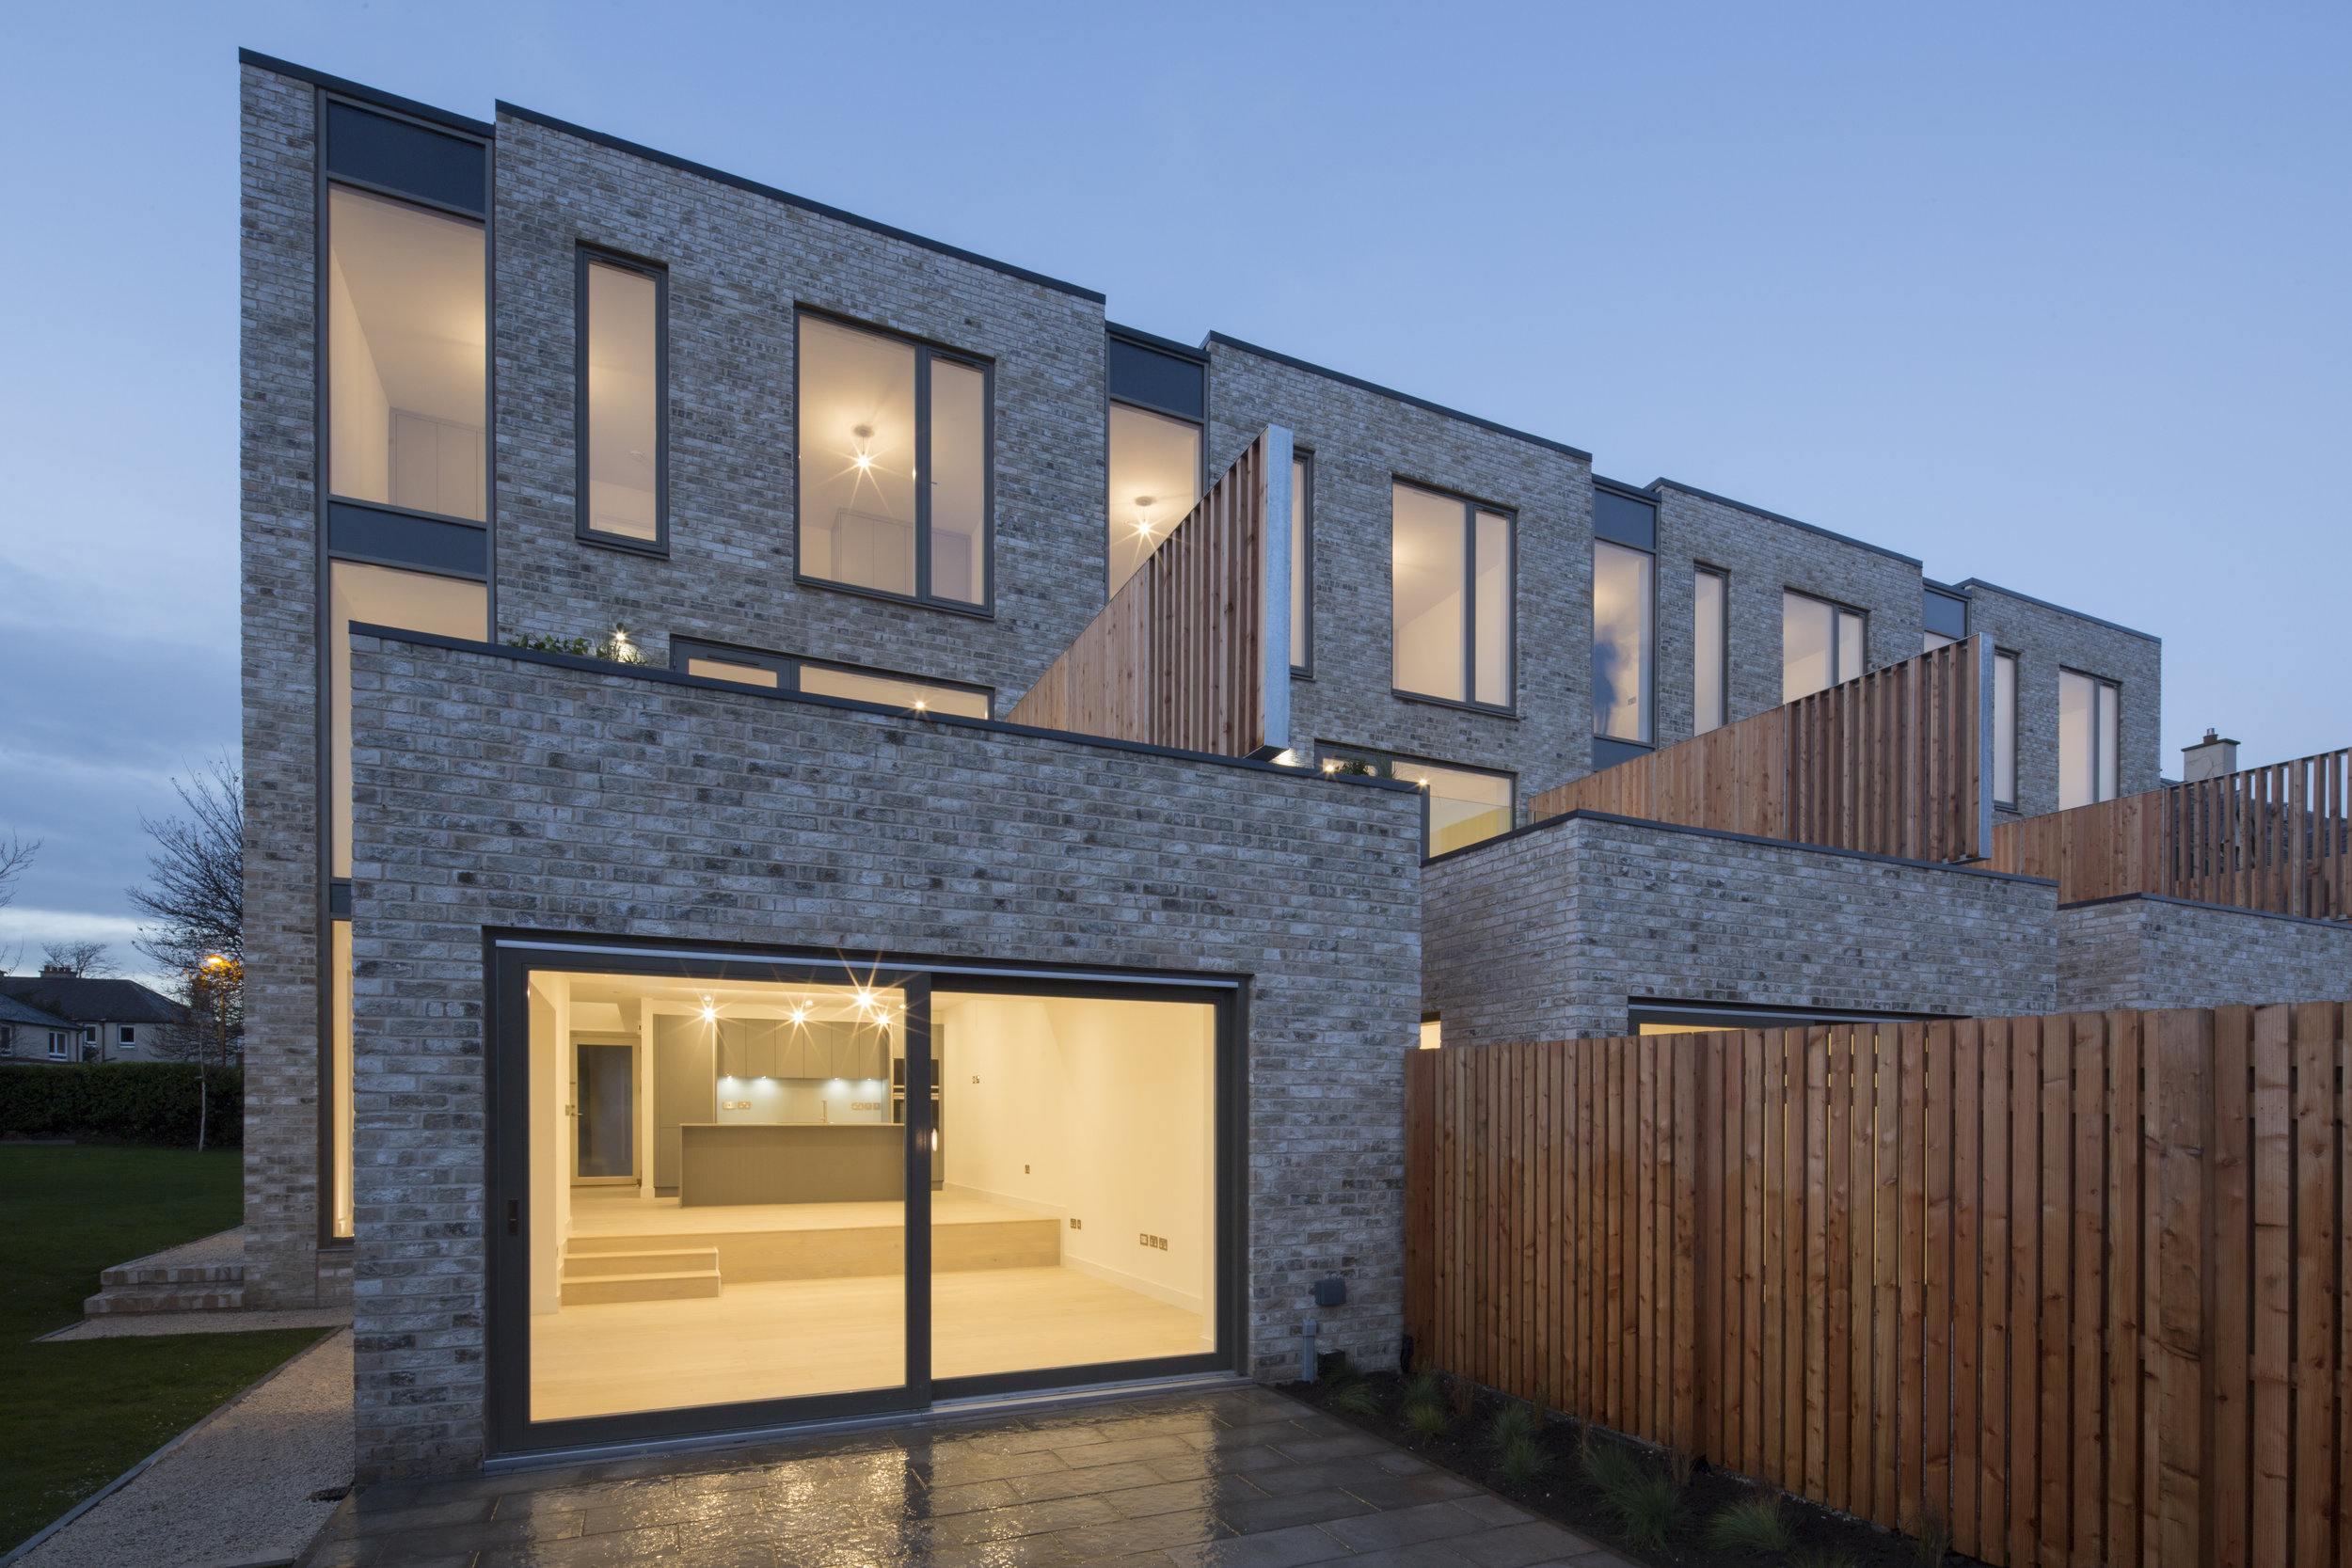 Scottish Home Awards Winner - Woodhall Drive wins Innovation in Design